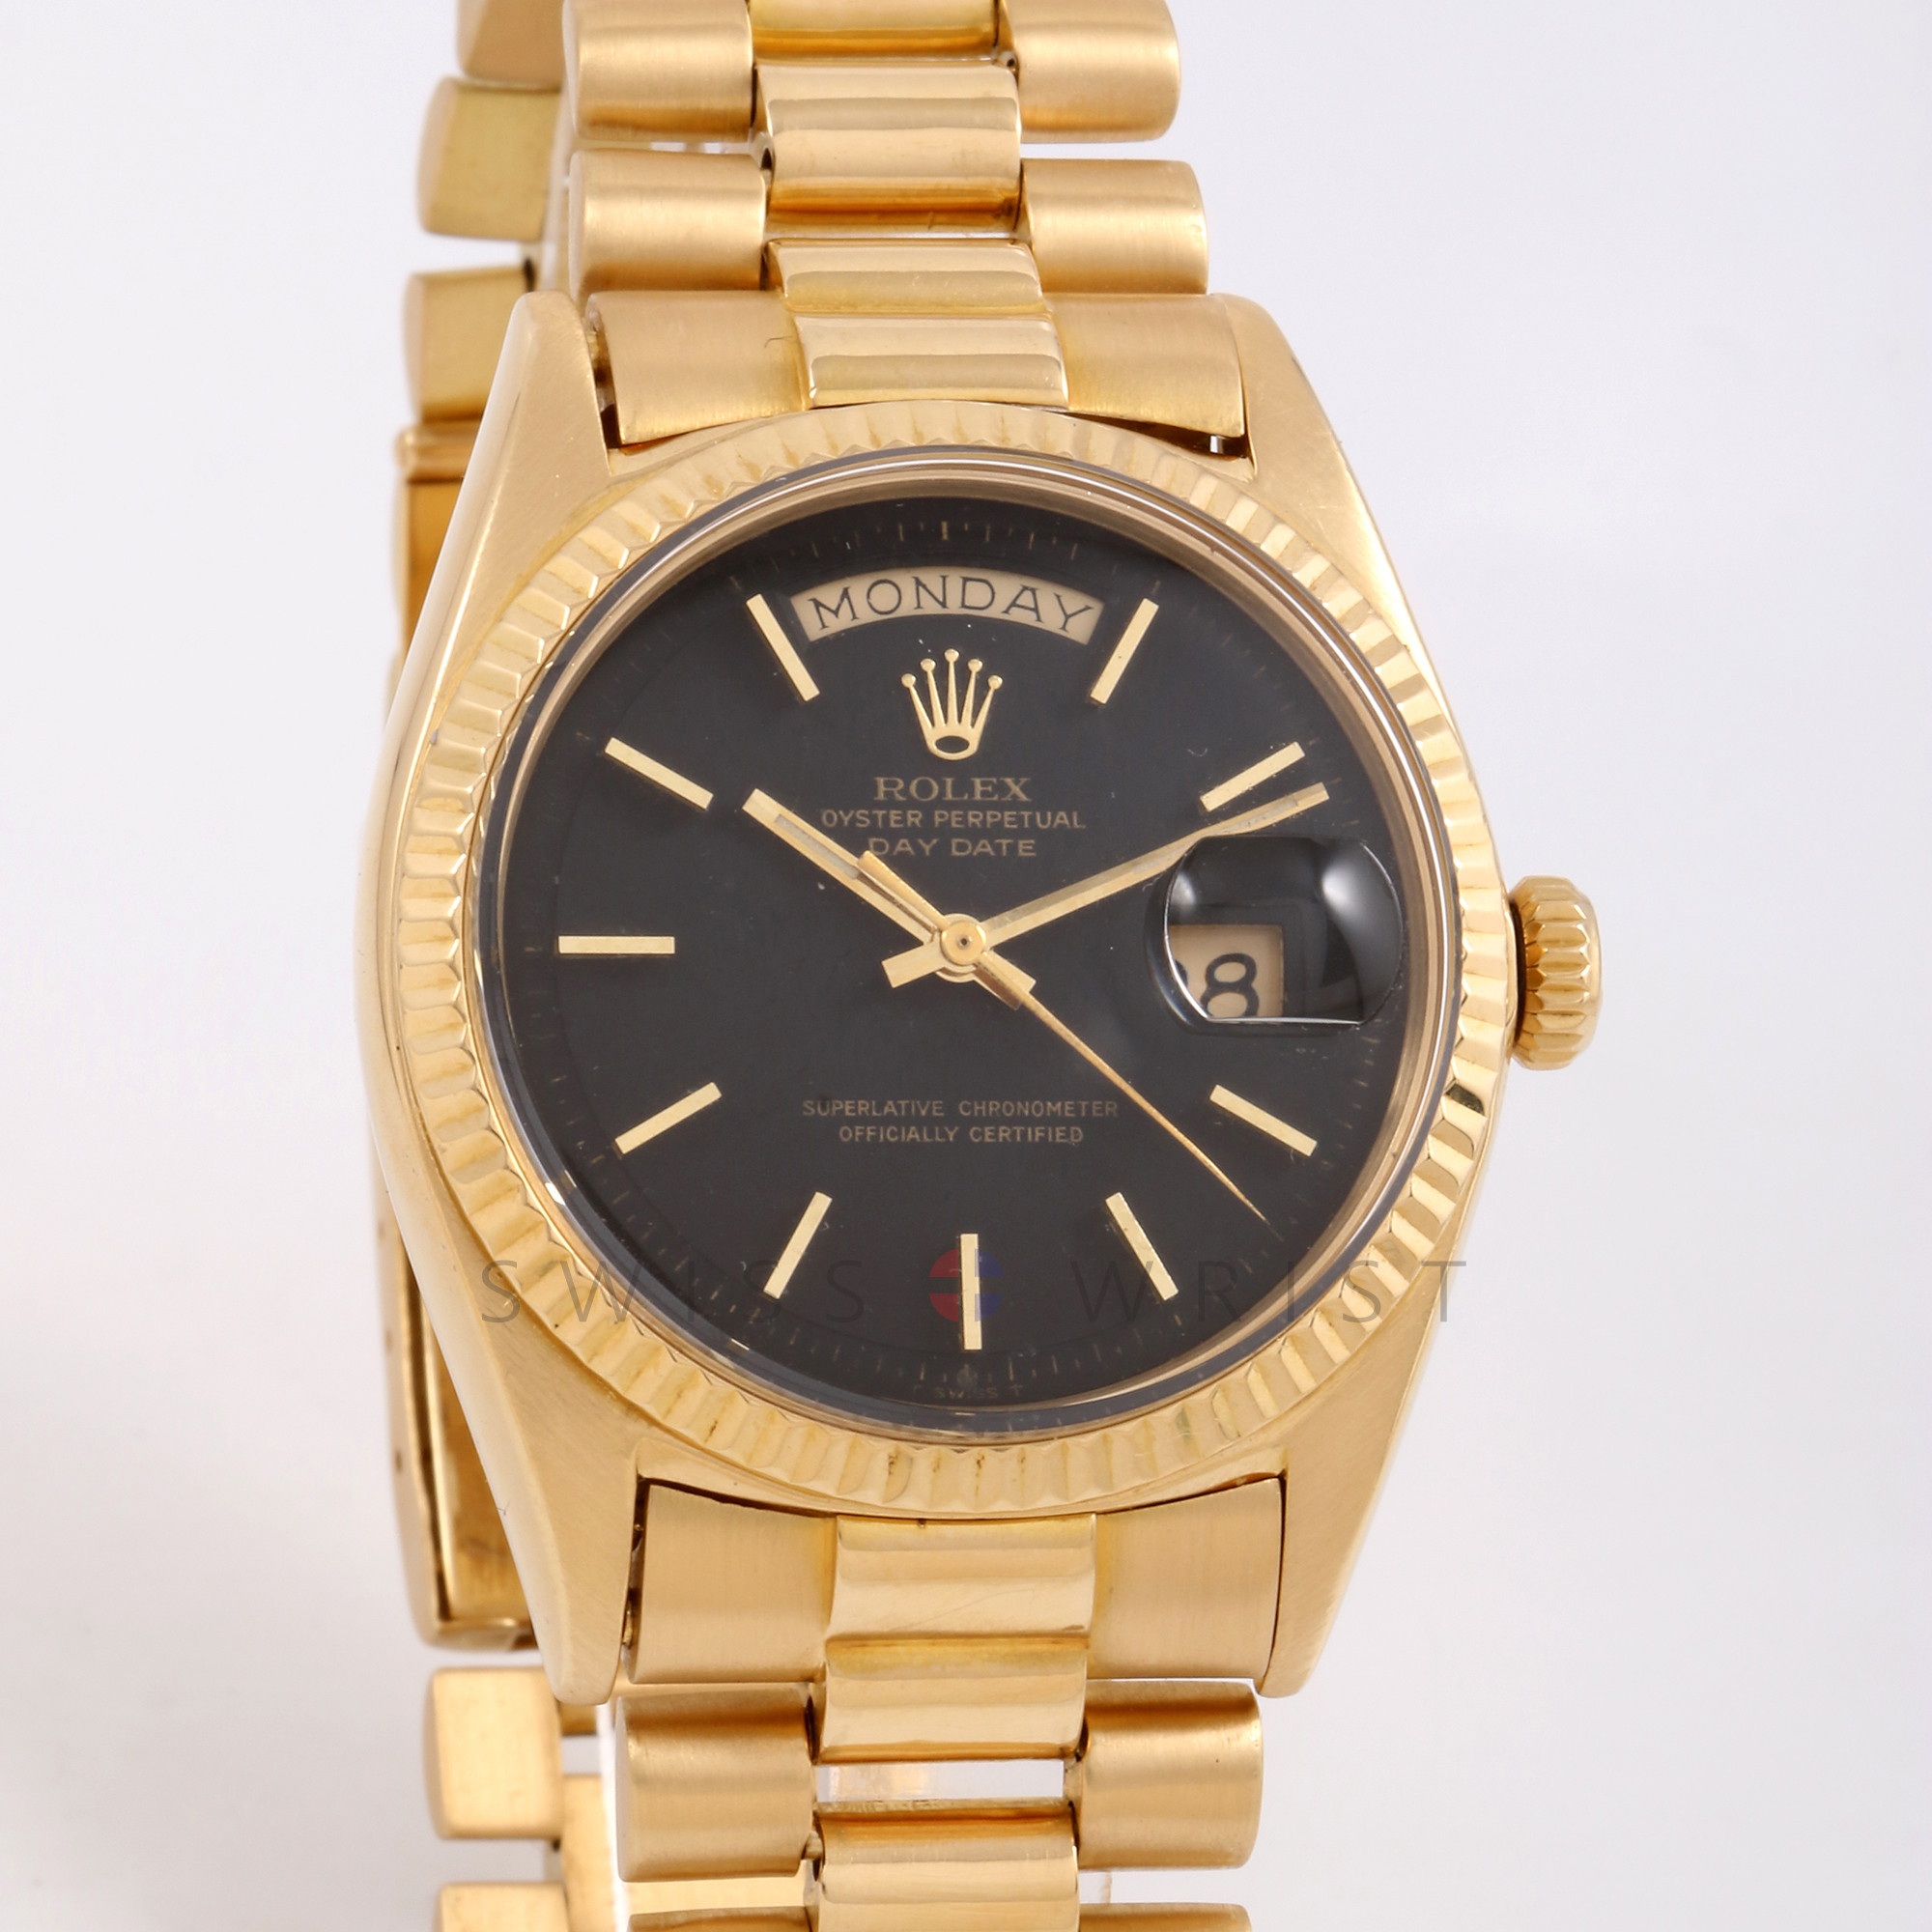 Rolex Day-Date 36 mm 1803 Yellow Gold, Black Stick Dial, Fluted Bezel on a Presidential Bracelet - Pre-Owned Non Quick Set Men's Watch